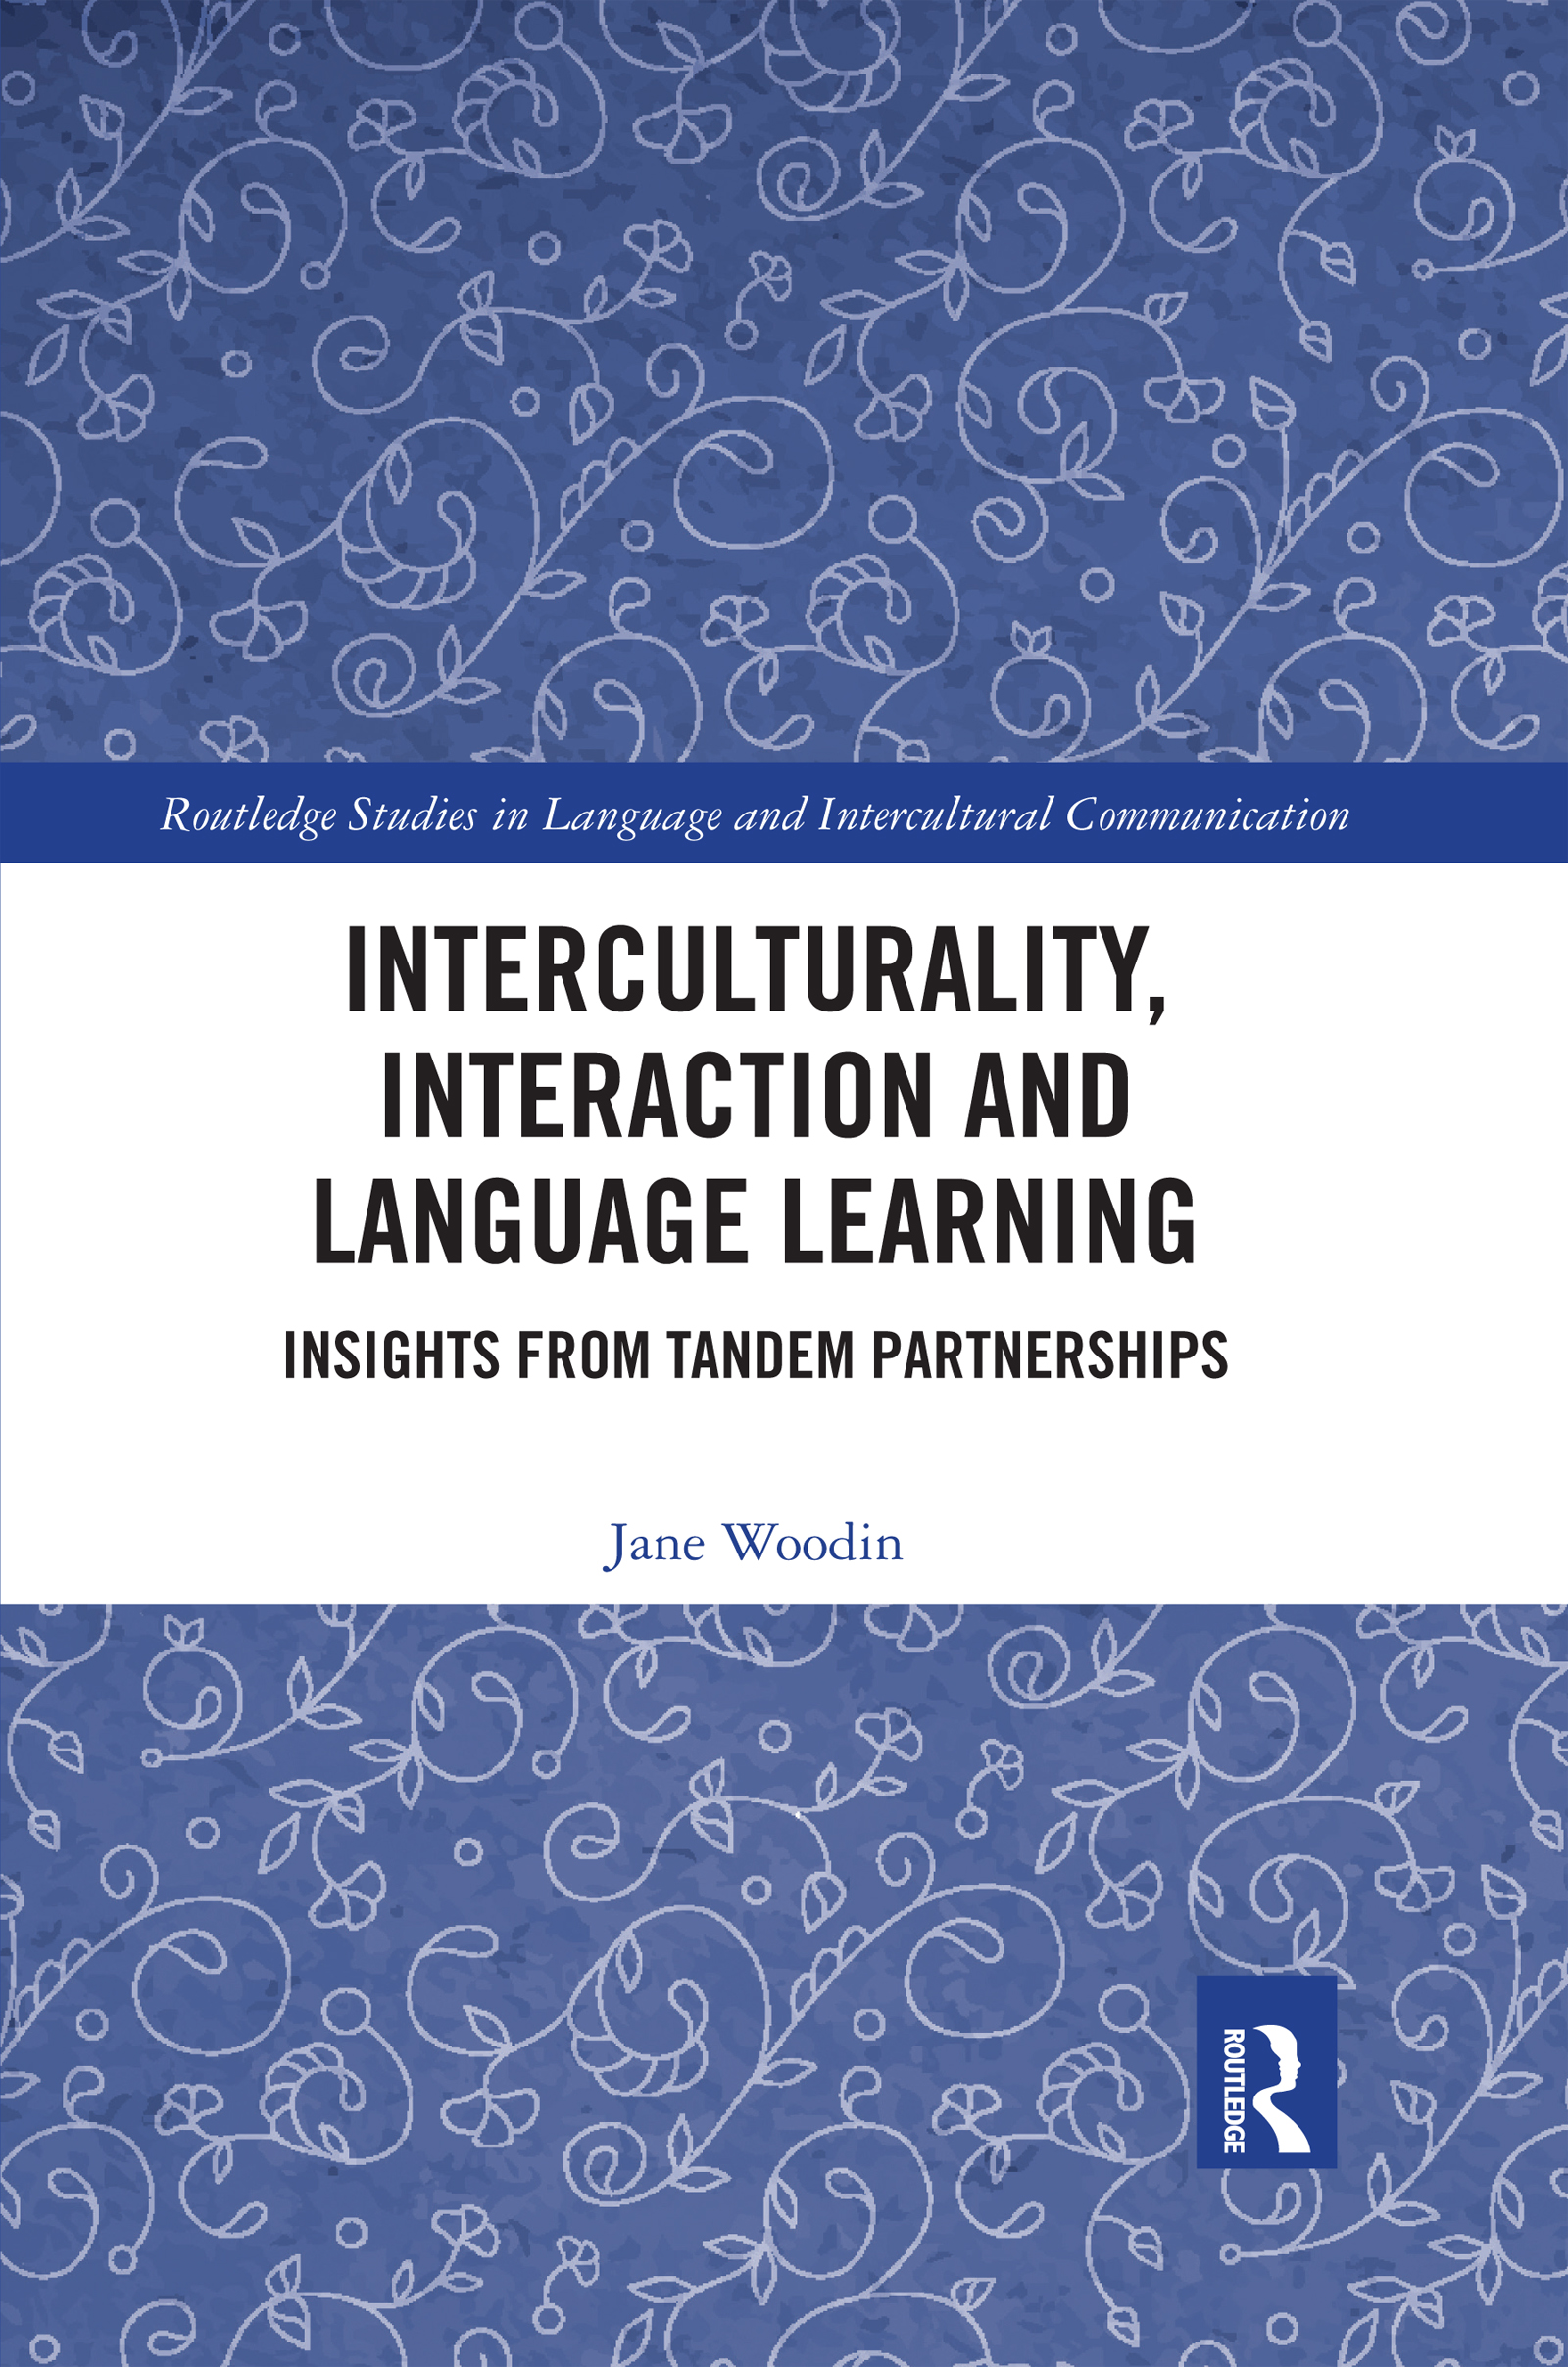 Interculturality, Interaction and Language Learning